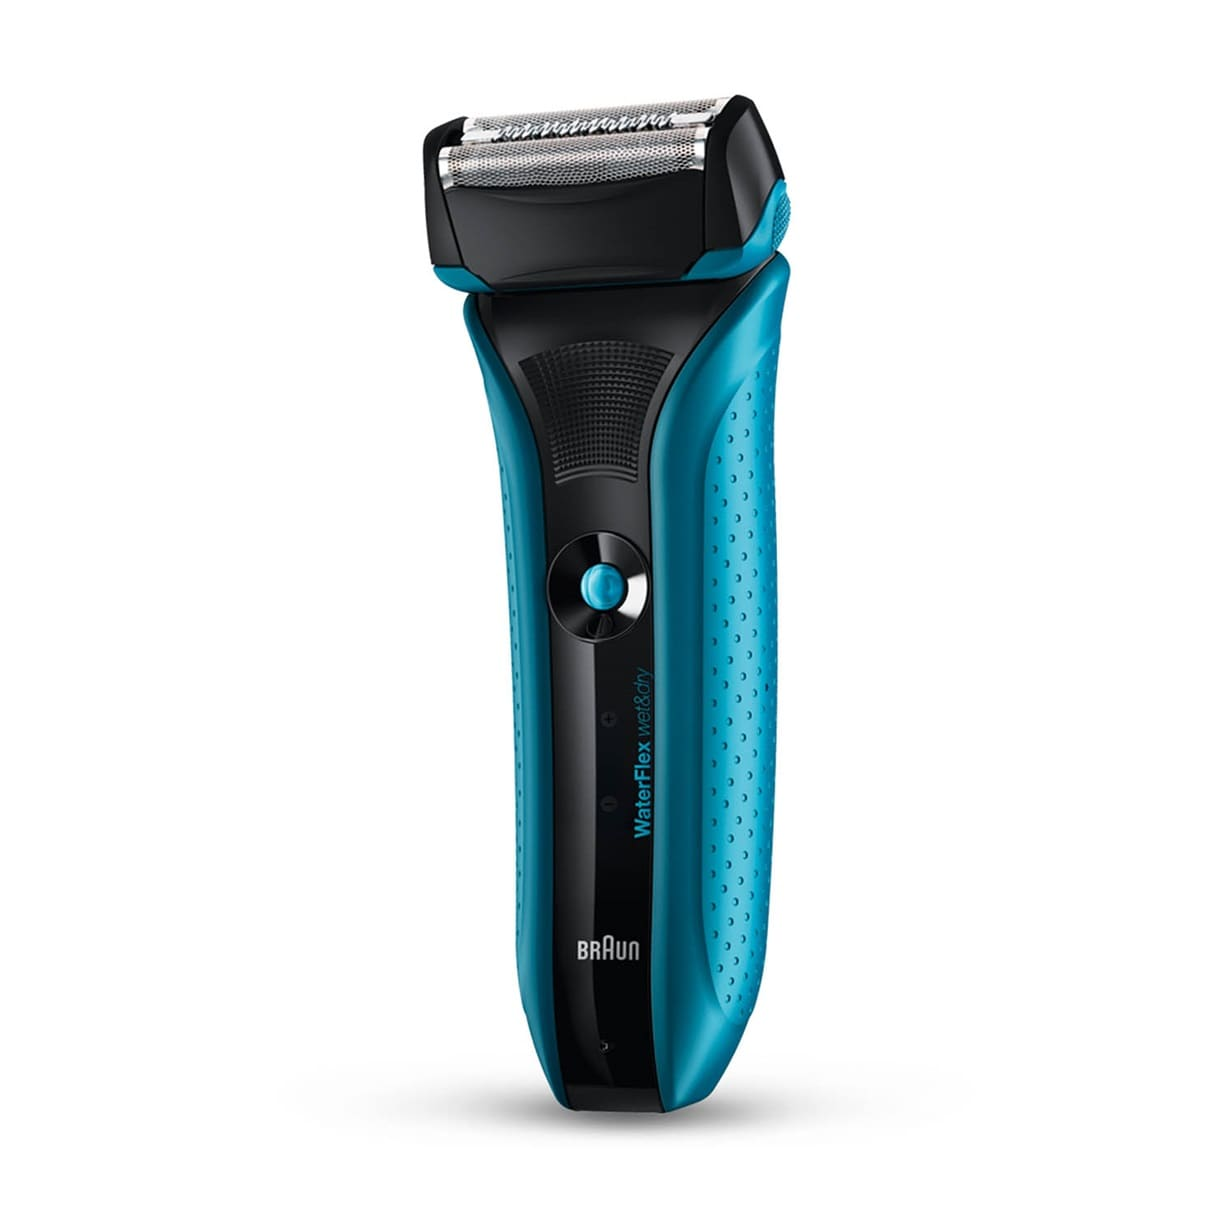 Braun WaterFlex WF2s blue Wet & Dry shaver with swivel head